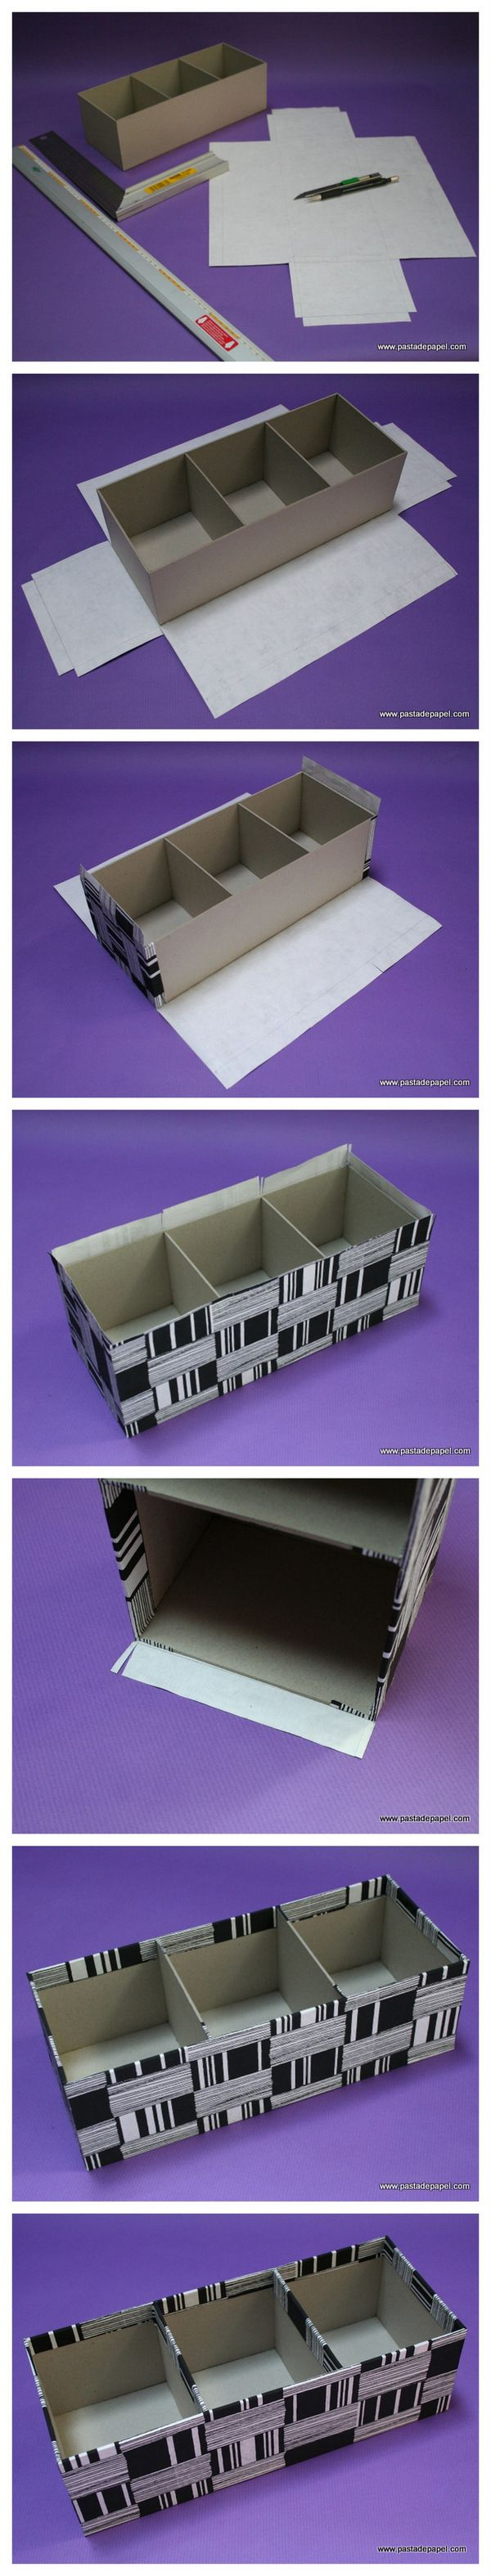 How to make a gray cardboard box with compartments: paper box